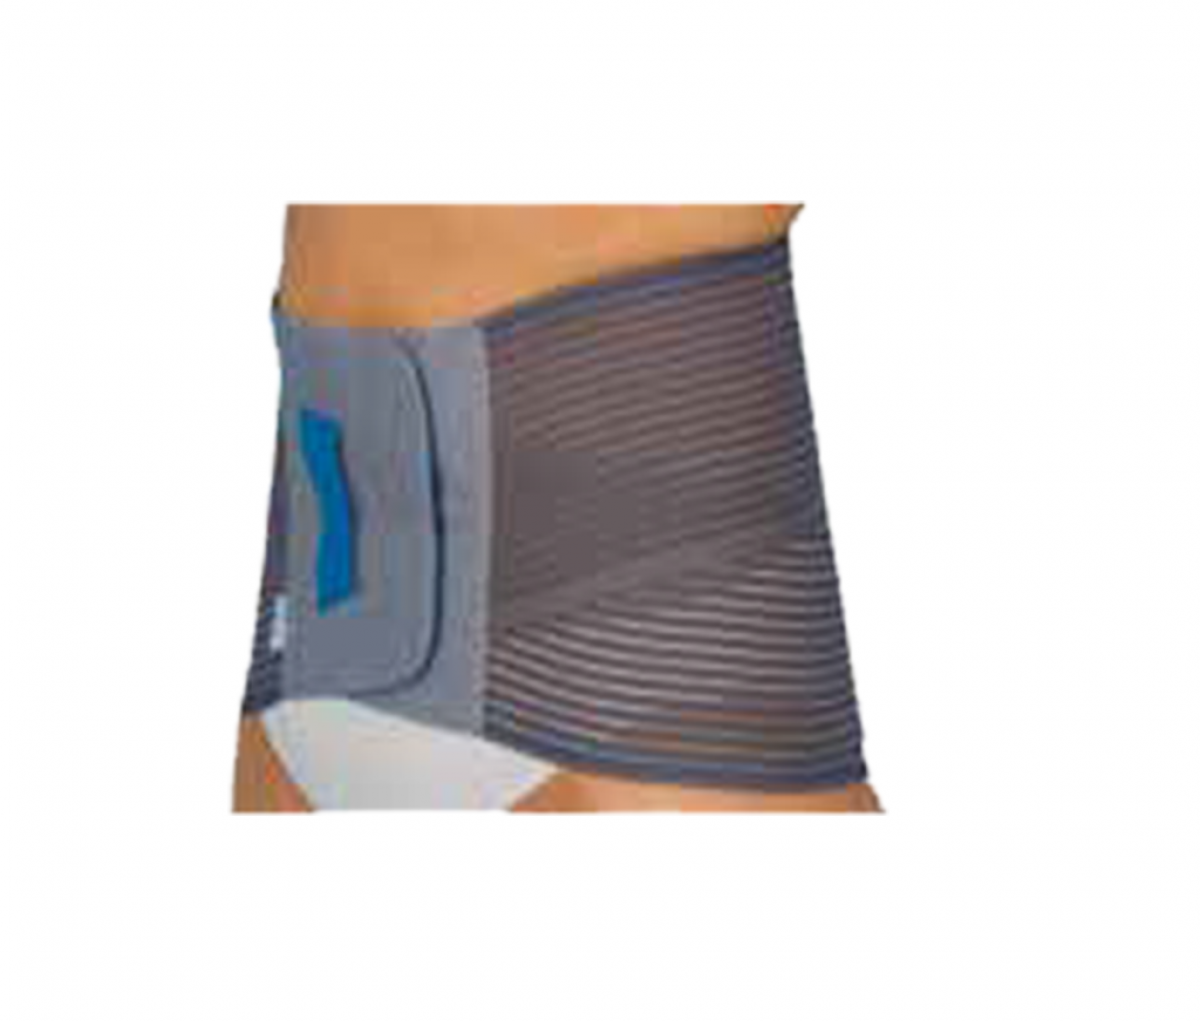 ACTION SEMIRIGID BACK SUPPORT - S 980G